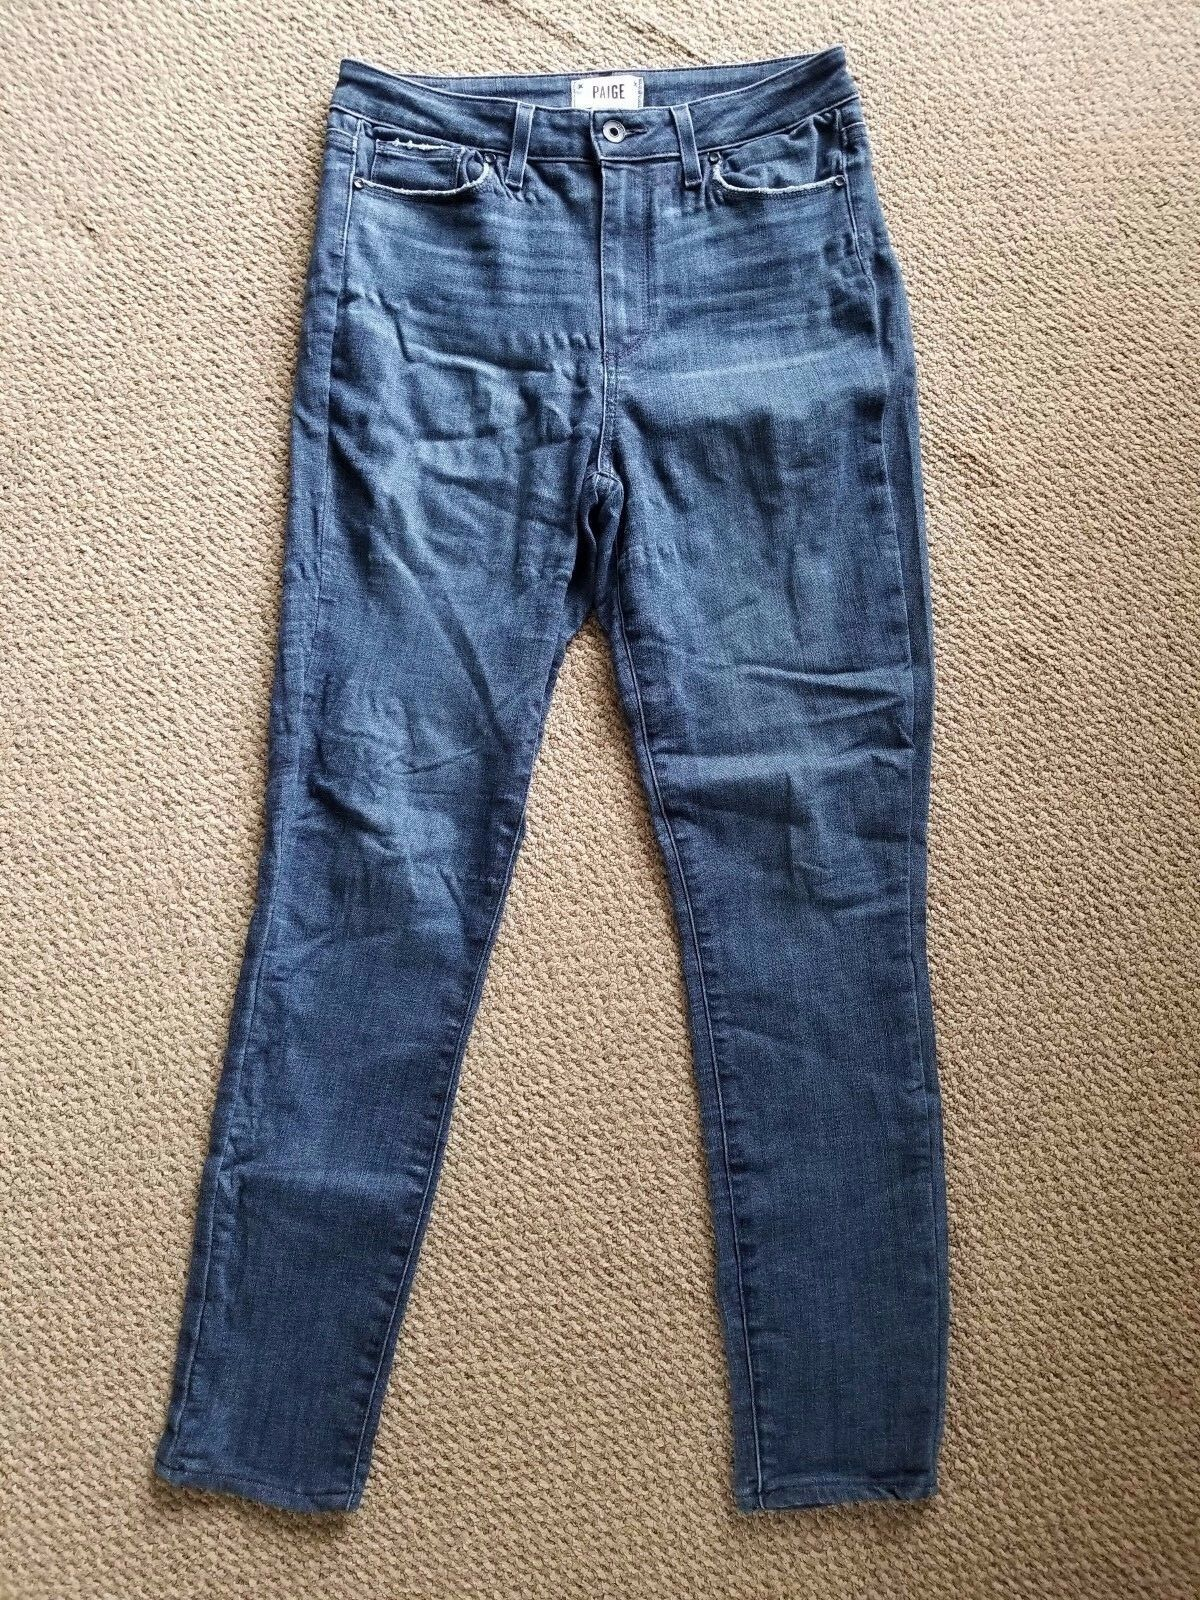 Paige Margot Ultra Skinny High Rise Stretch Jeans in Maley Size 29 x 29